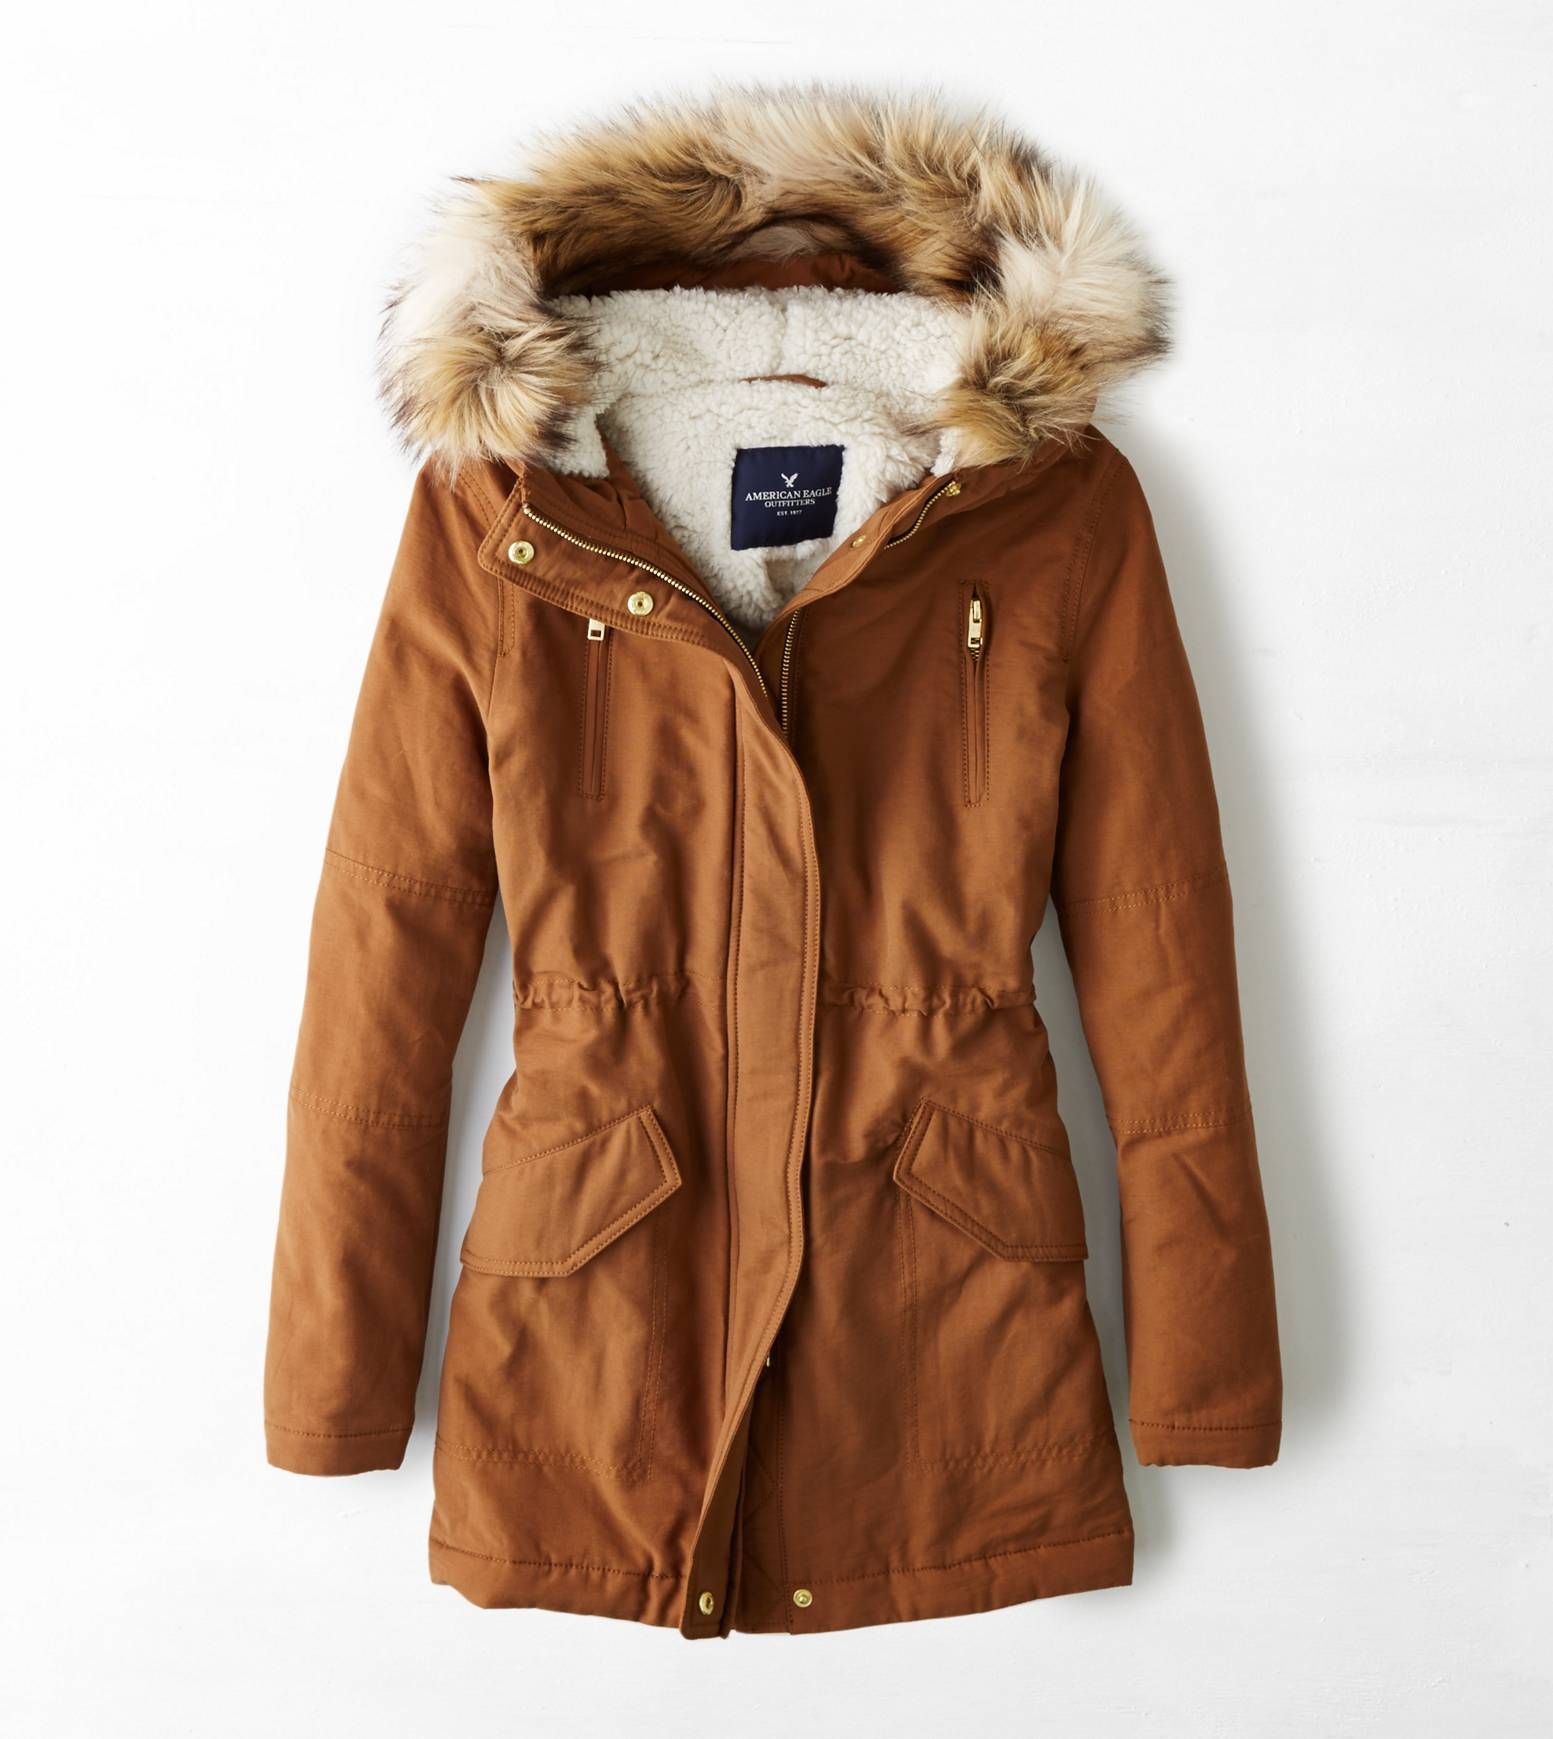 Tobacco AEO Cinched Surplus Parka Winter Parka a7c987f56def8